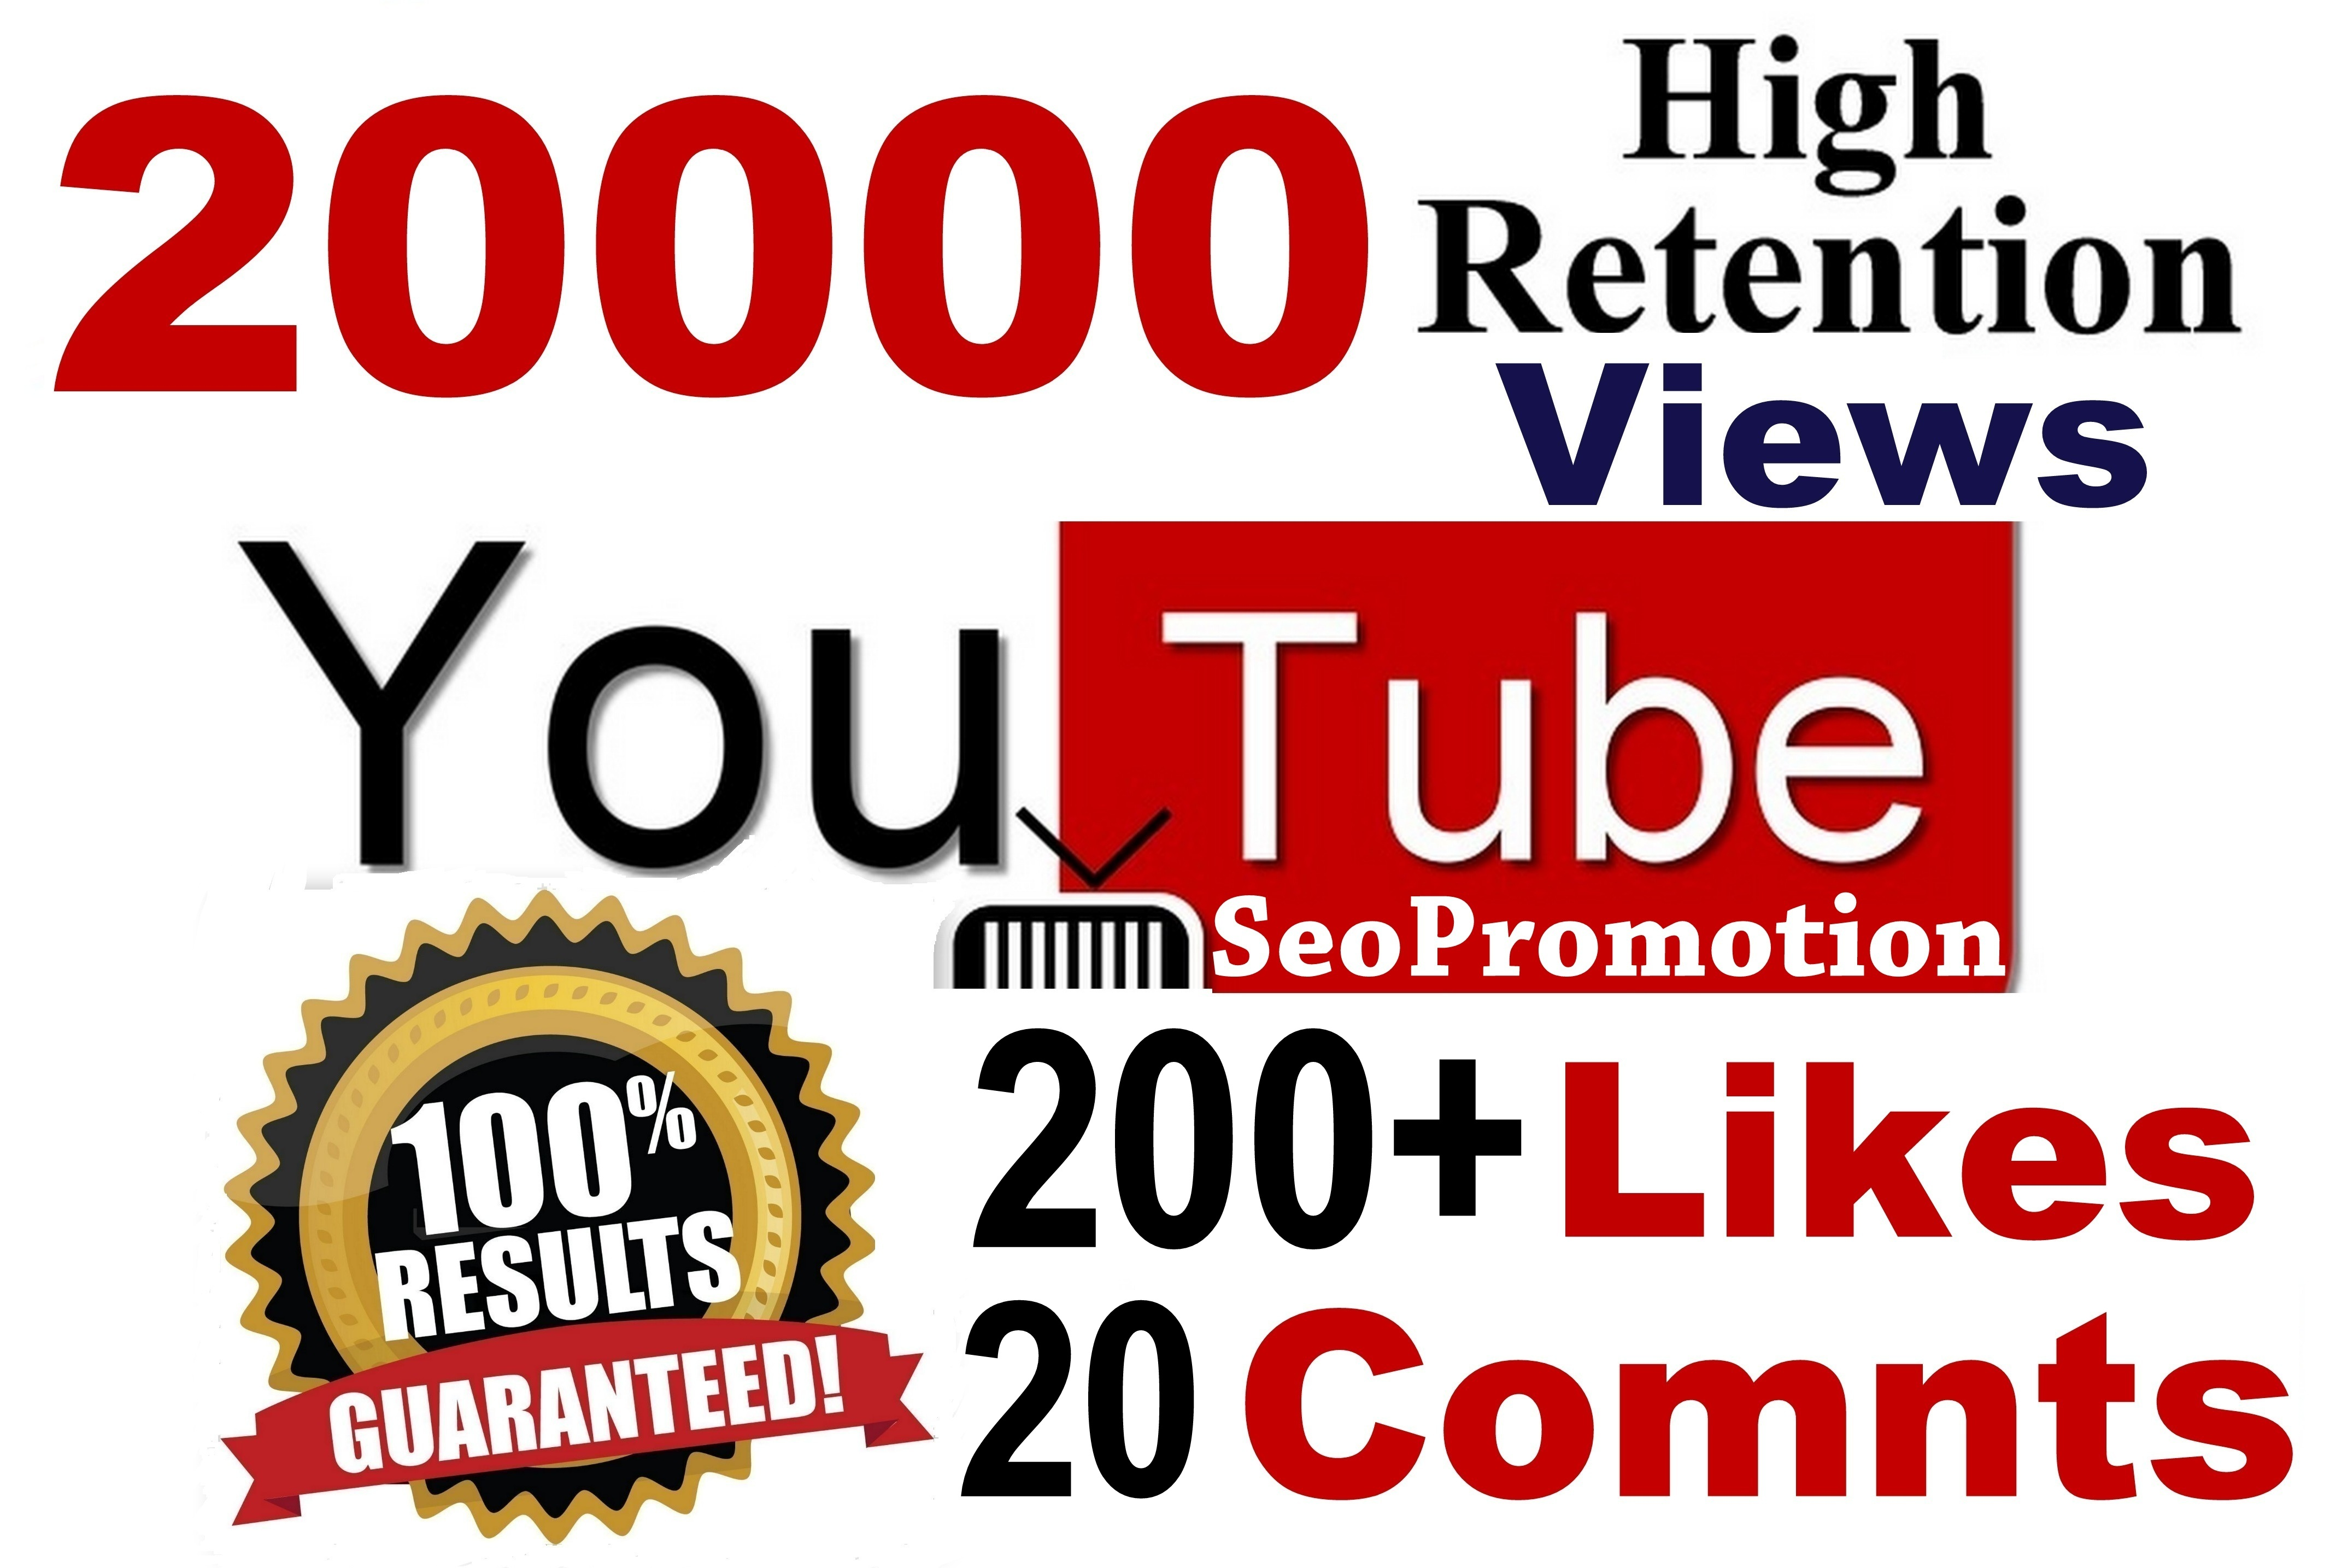 20000+ views & 200+ Likes Seo Optimizied You'tube video Promotion